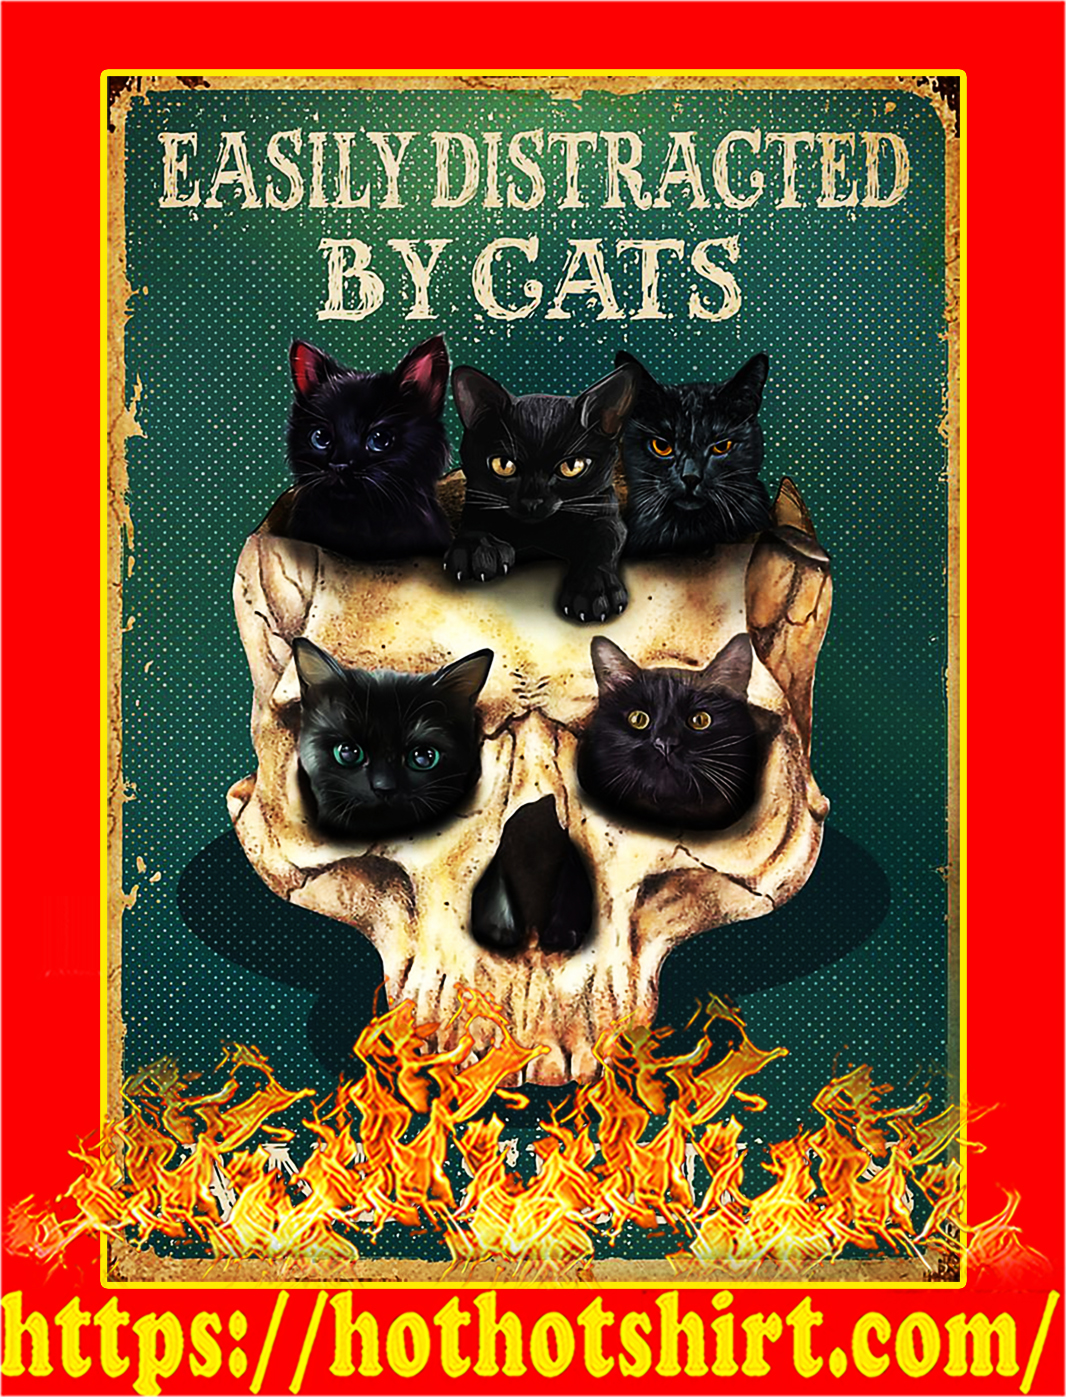 Easily distracted by cats and skulls poster - A4